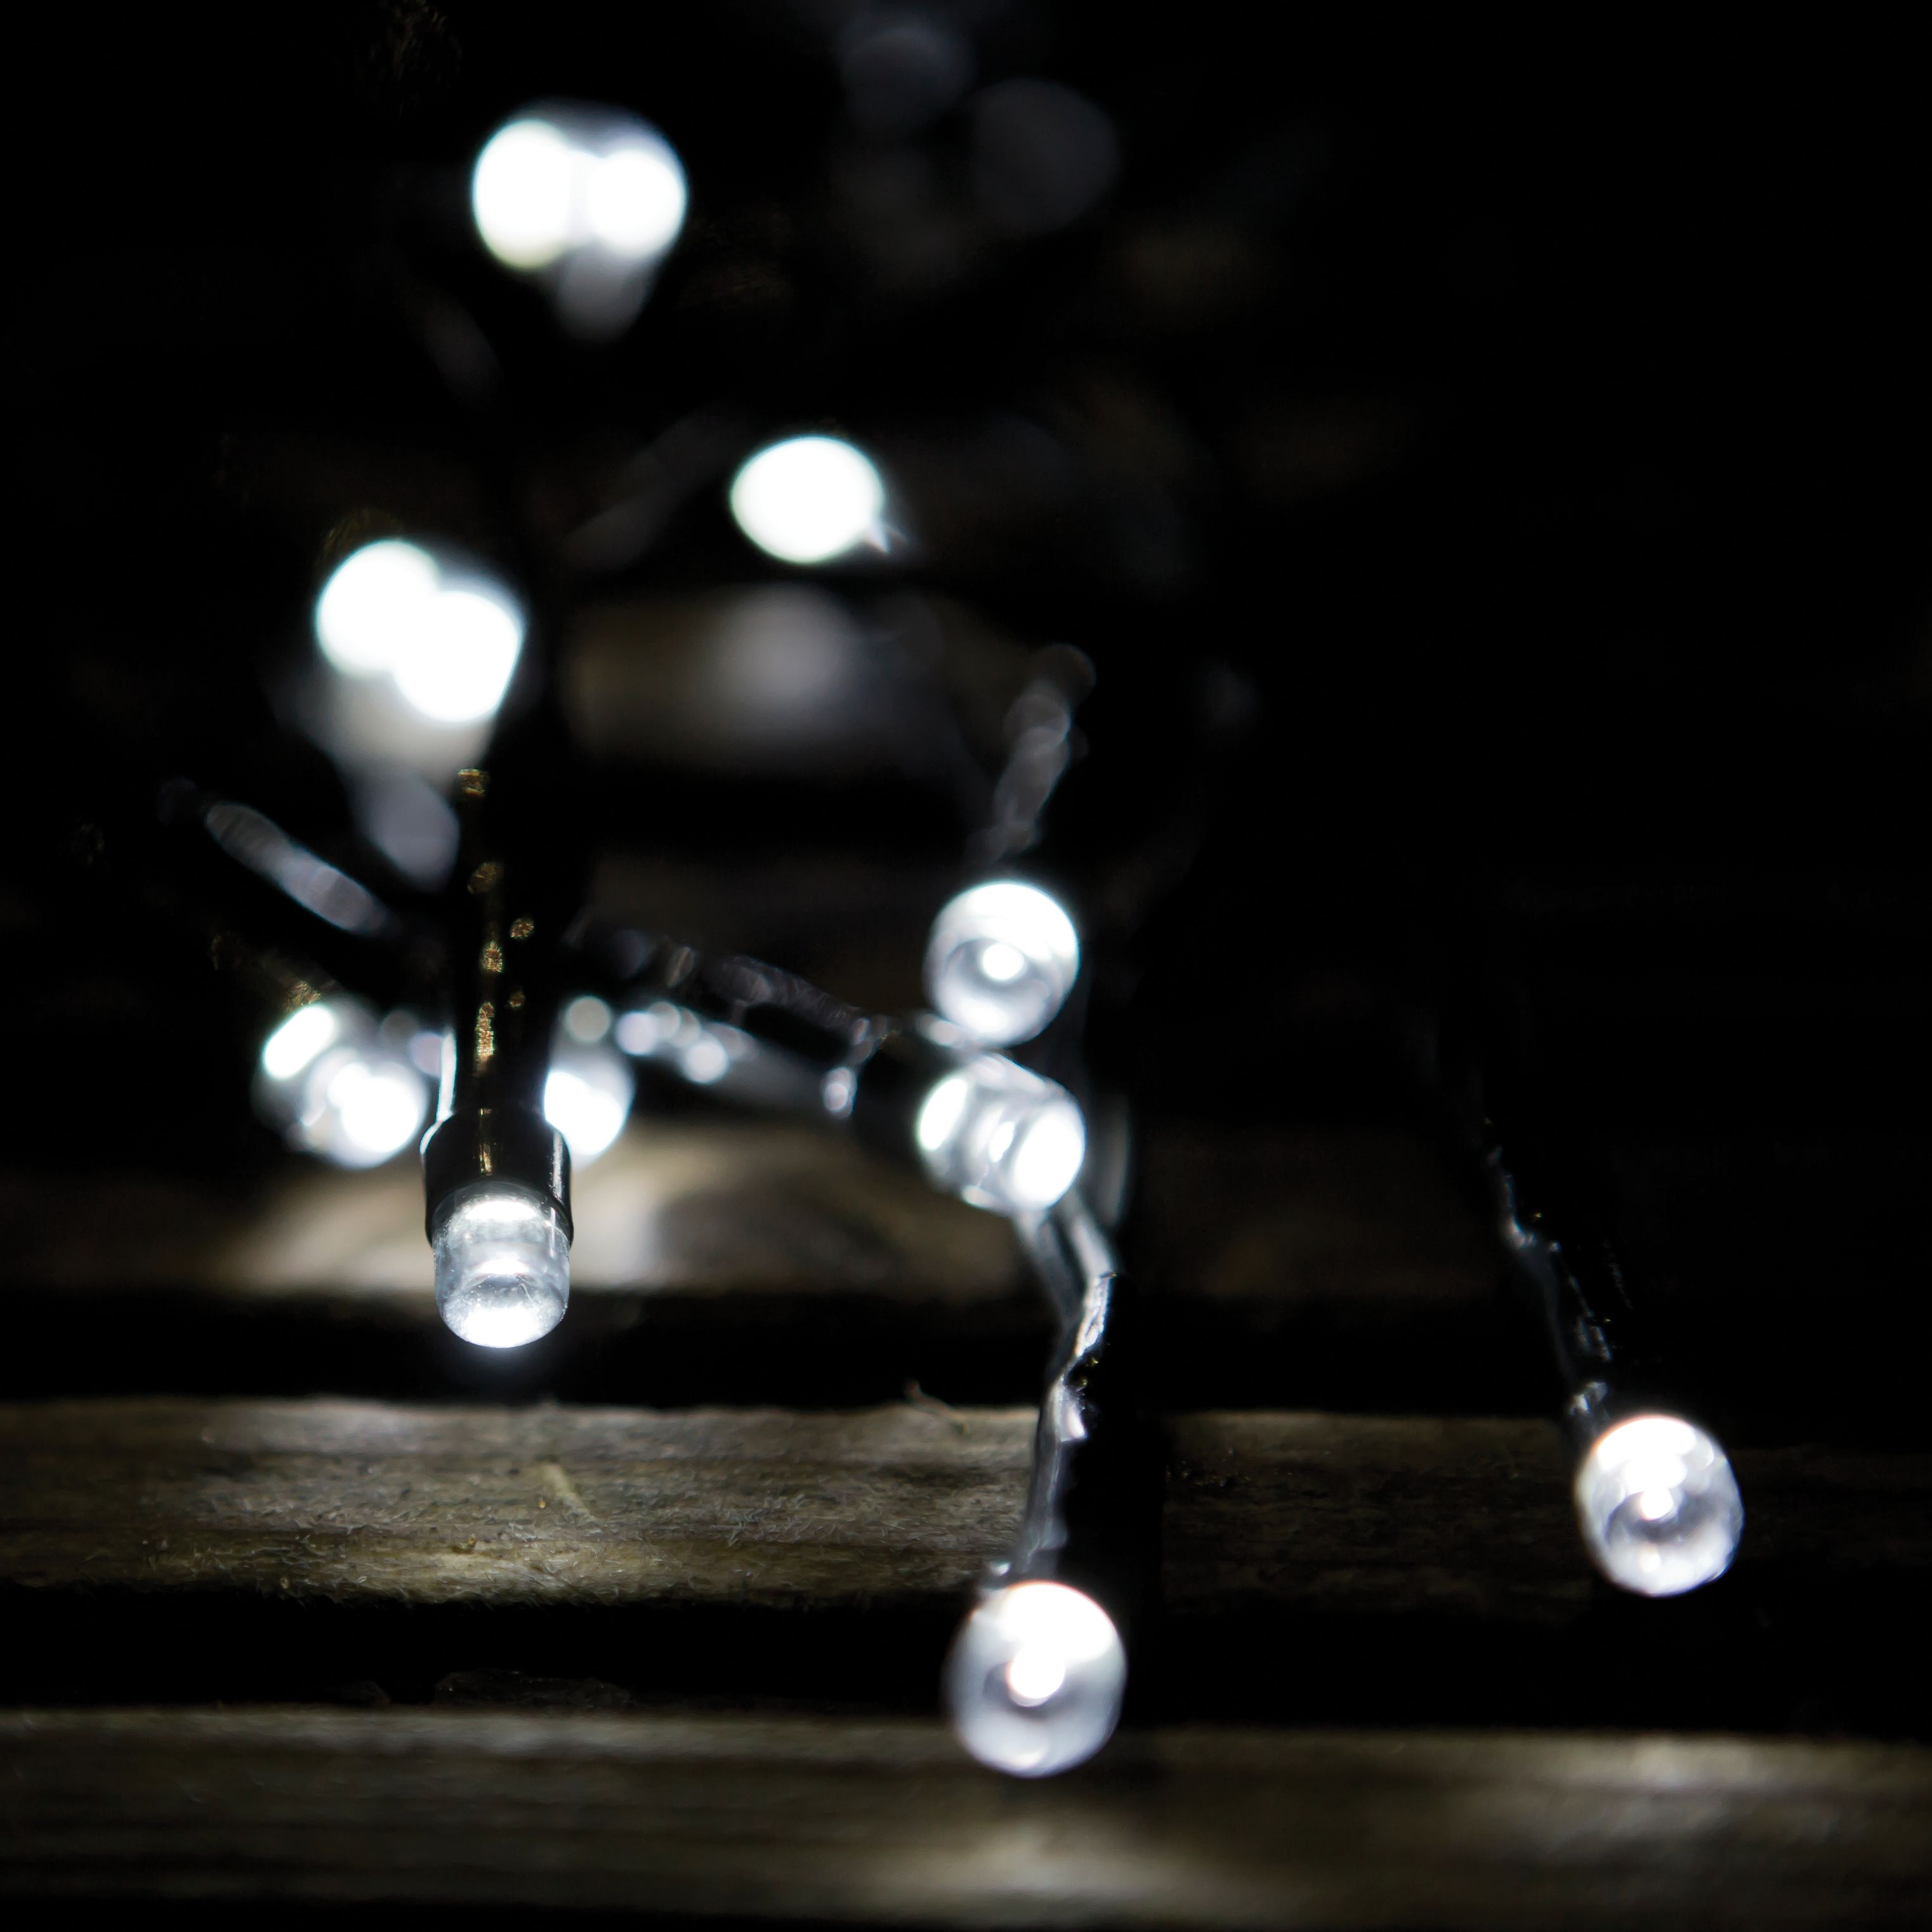 Wickes Garden Wall Lights : Wickes LED Solar String Lights Pack 100 Wickes.co.uk